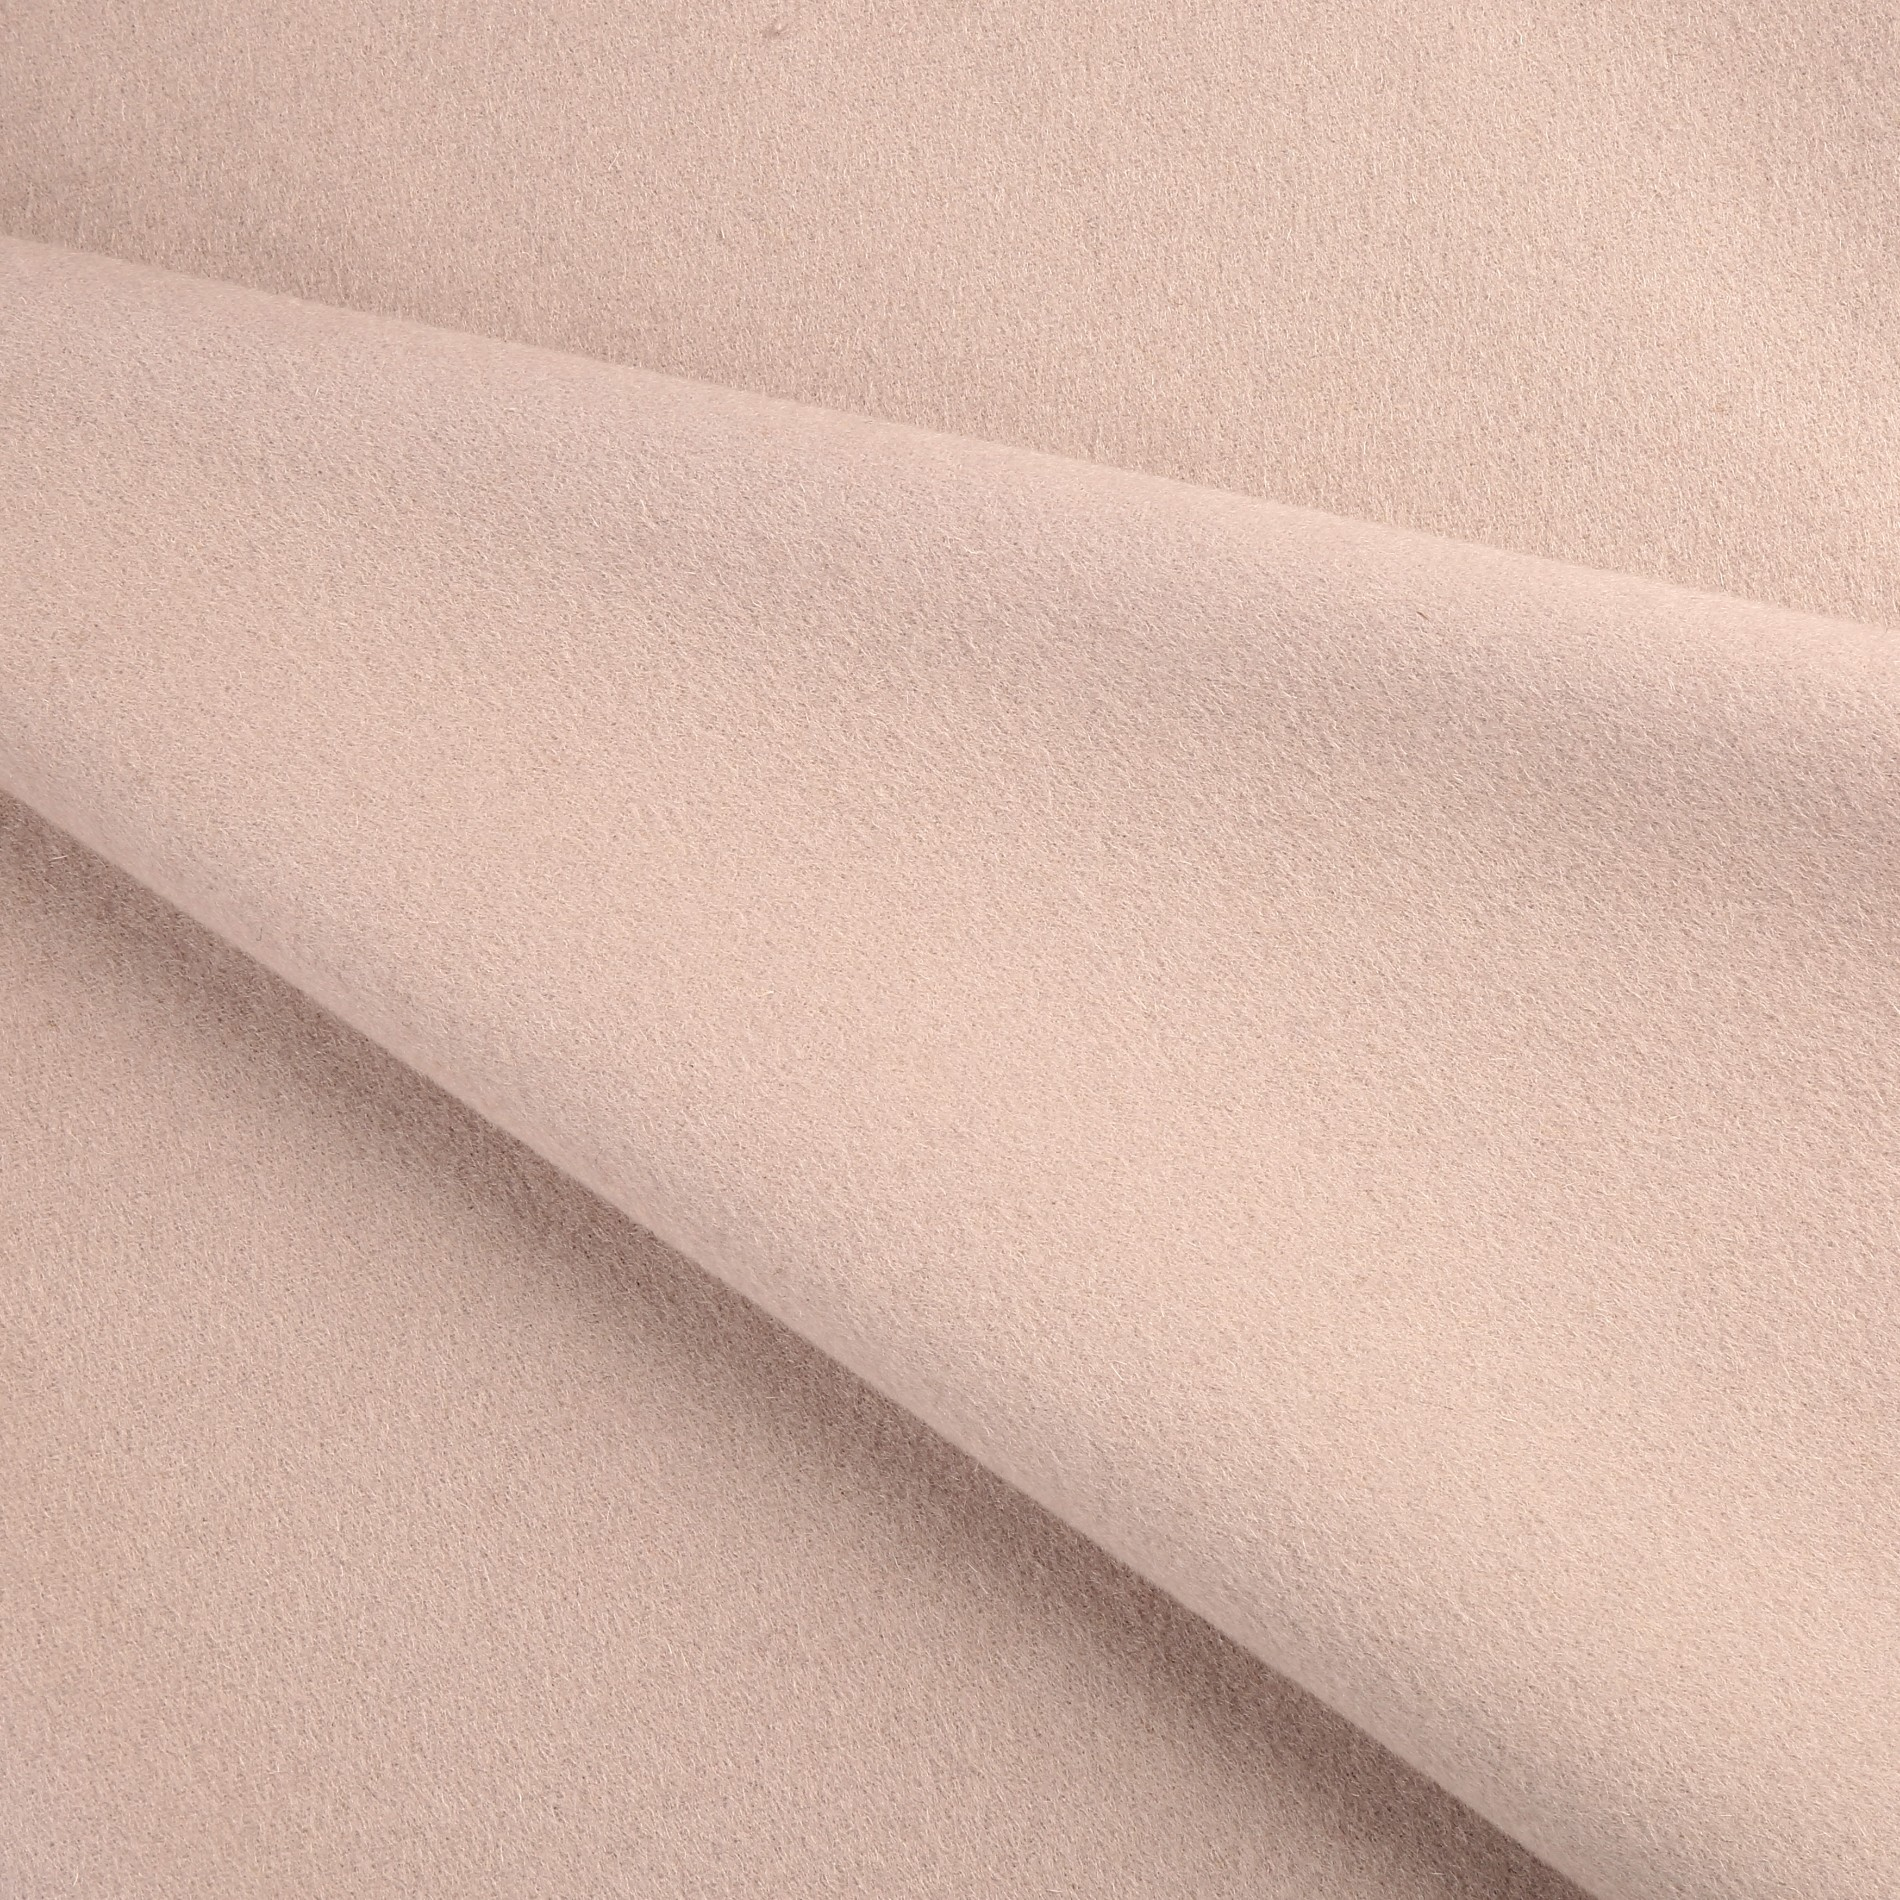 Wool Melton Fabric Pink Colors Manufacturers, Wool Melton Fabric Pink Colors Factory, Supply Wool Melton Fabric Pink Colors